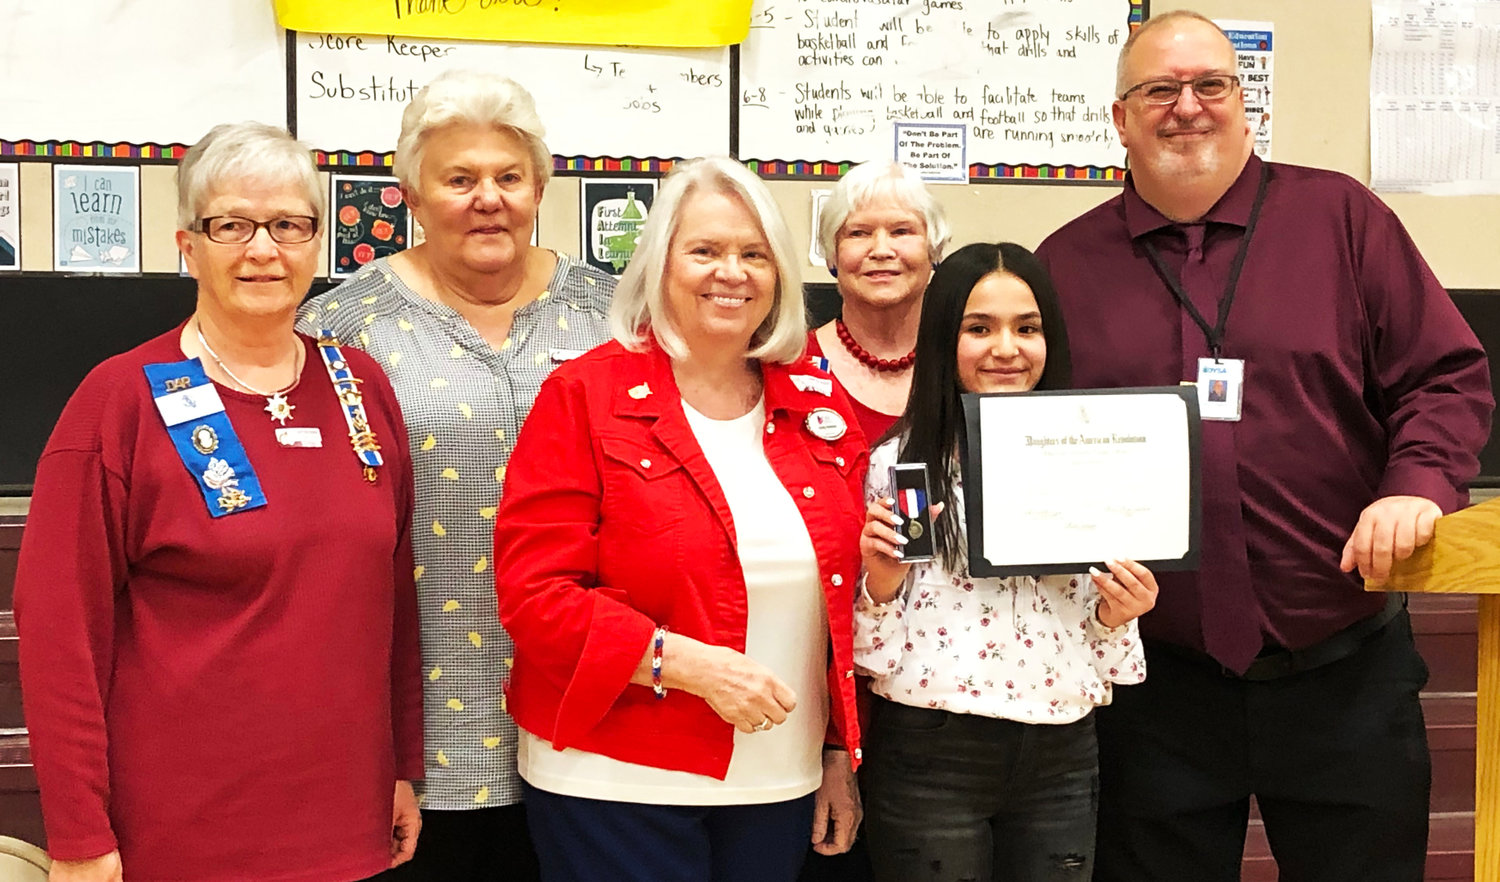 From left, Chapter regent Shirley Staggs, Anita Borski, Chapter chaplain Cynthia Dobbins, Chapter secretary Kathie Mittelsteadt, Chapter winner Mariah Torrez, and 7th grade history teacher Christopher Raso.